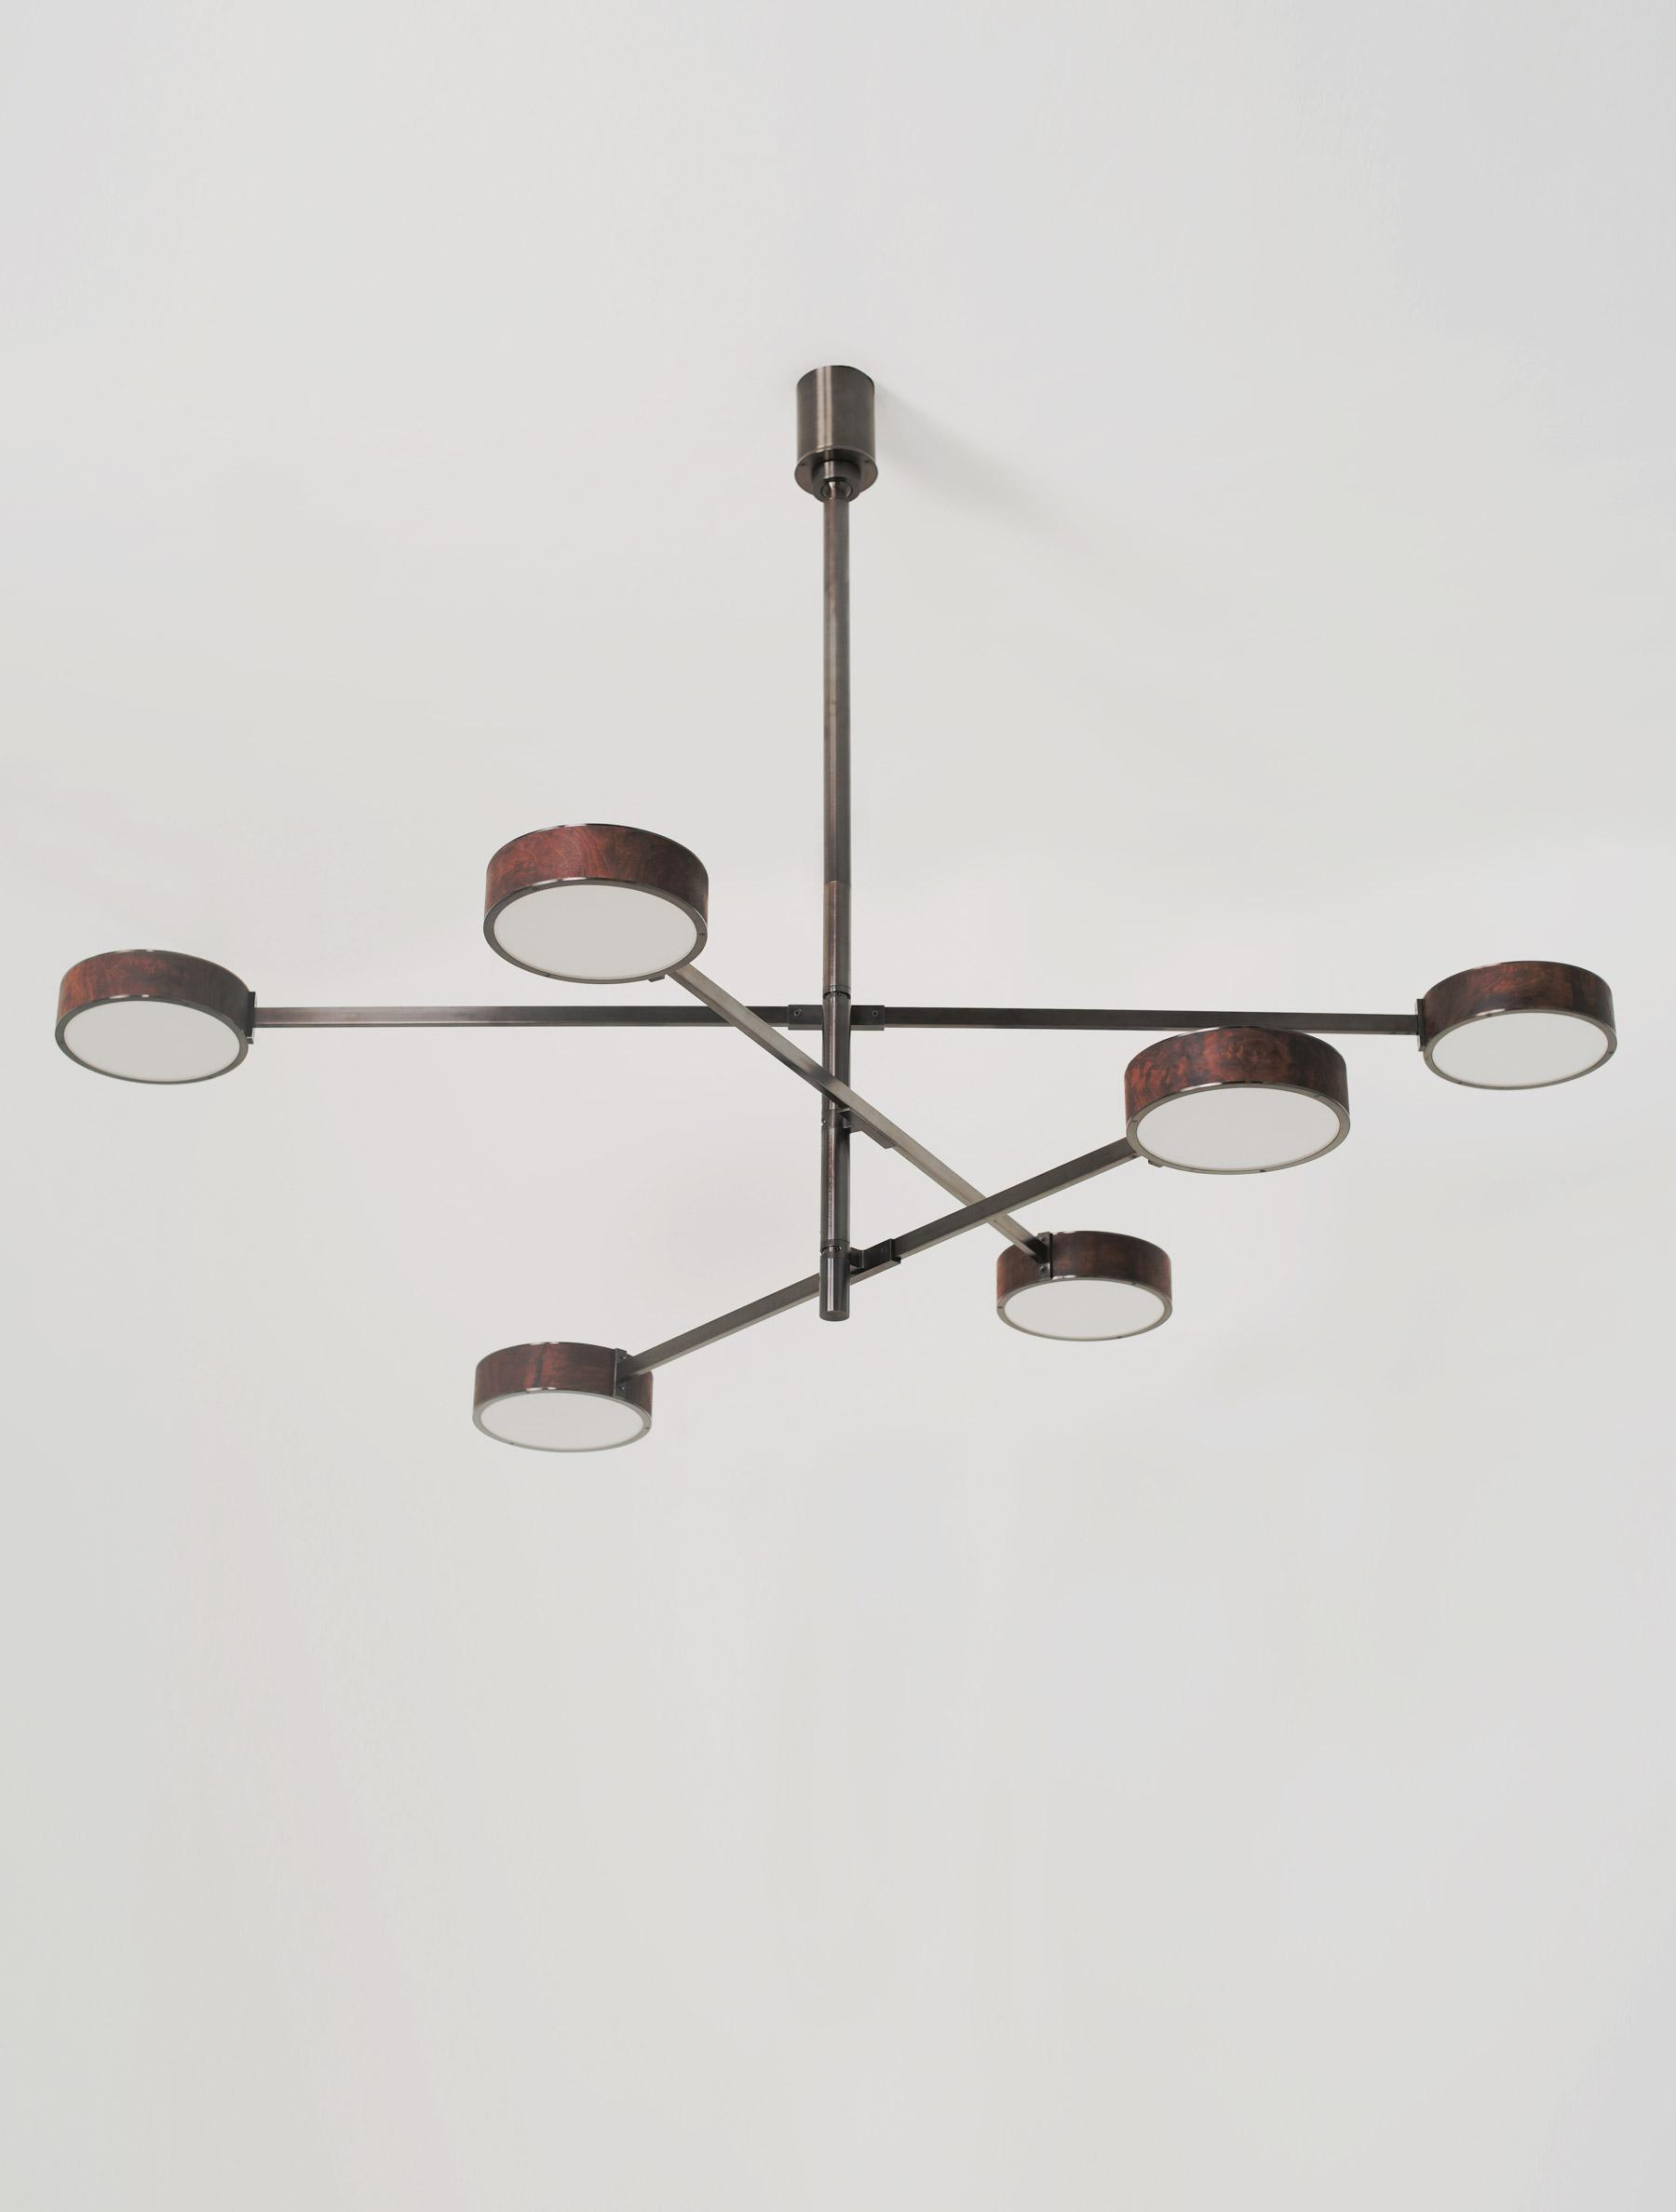 Monoscope 6 Chandelier shown in Blackened Brass, Walnut Burl